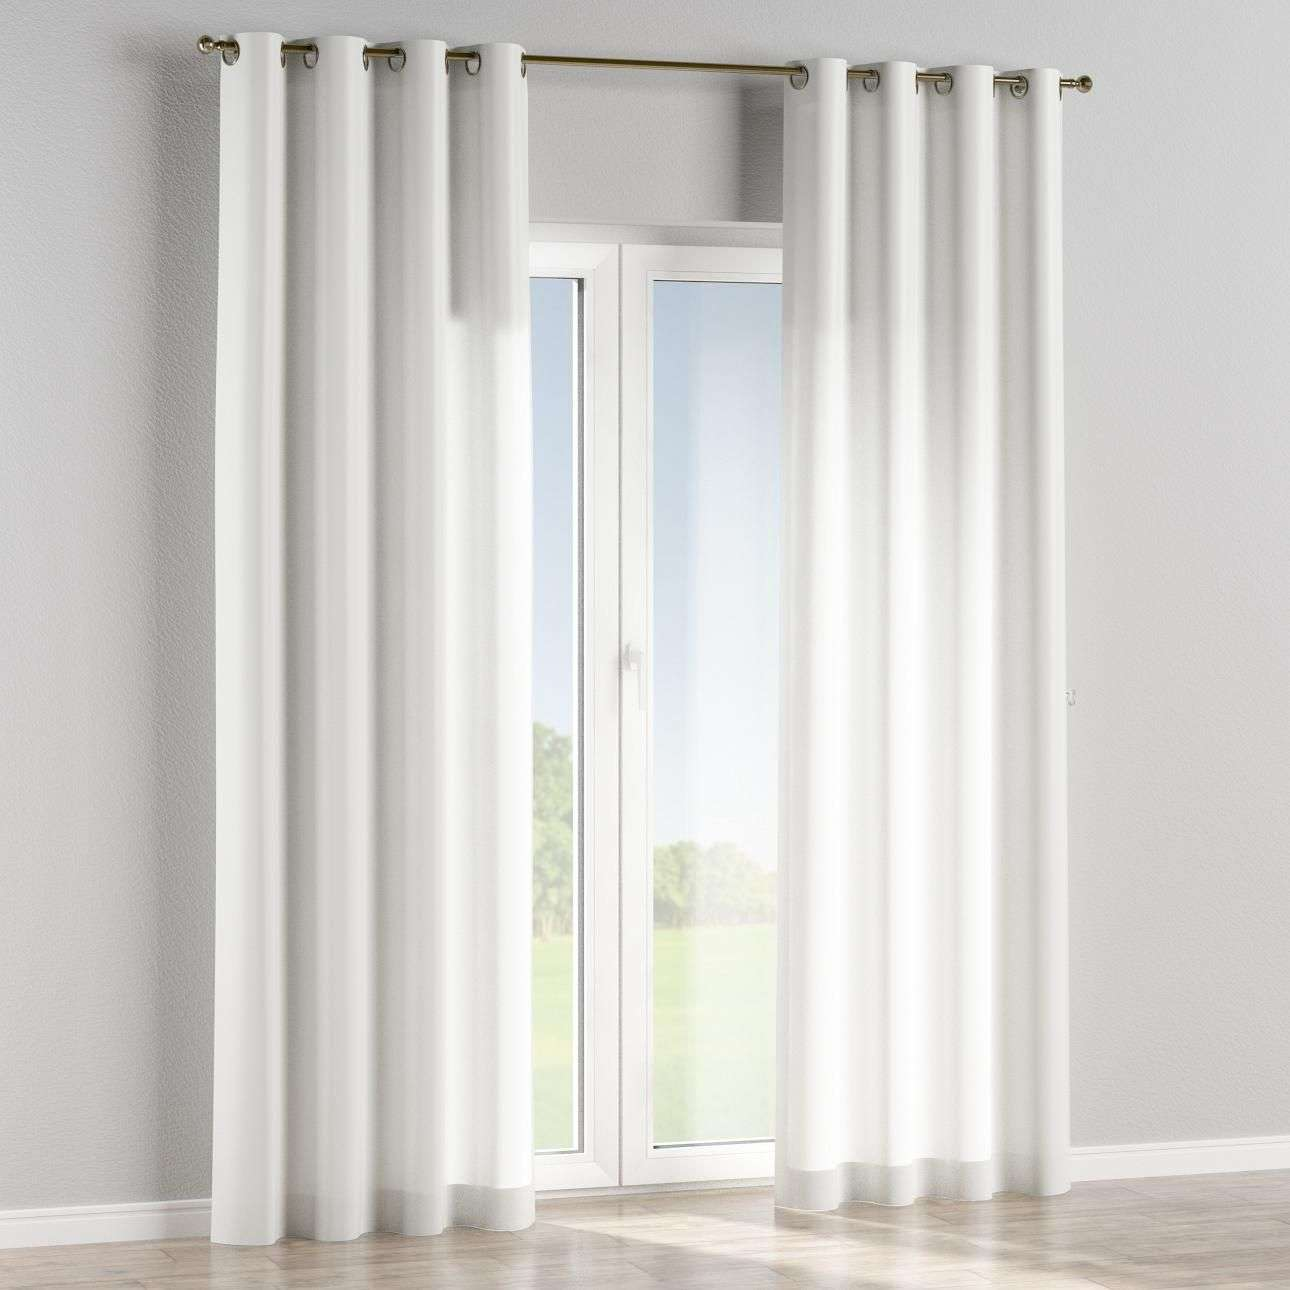 Eyelet lined curtains in collection Cotton Panama, fabric: 702-05